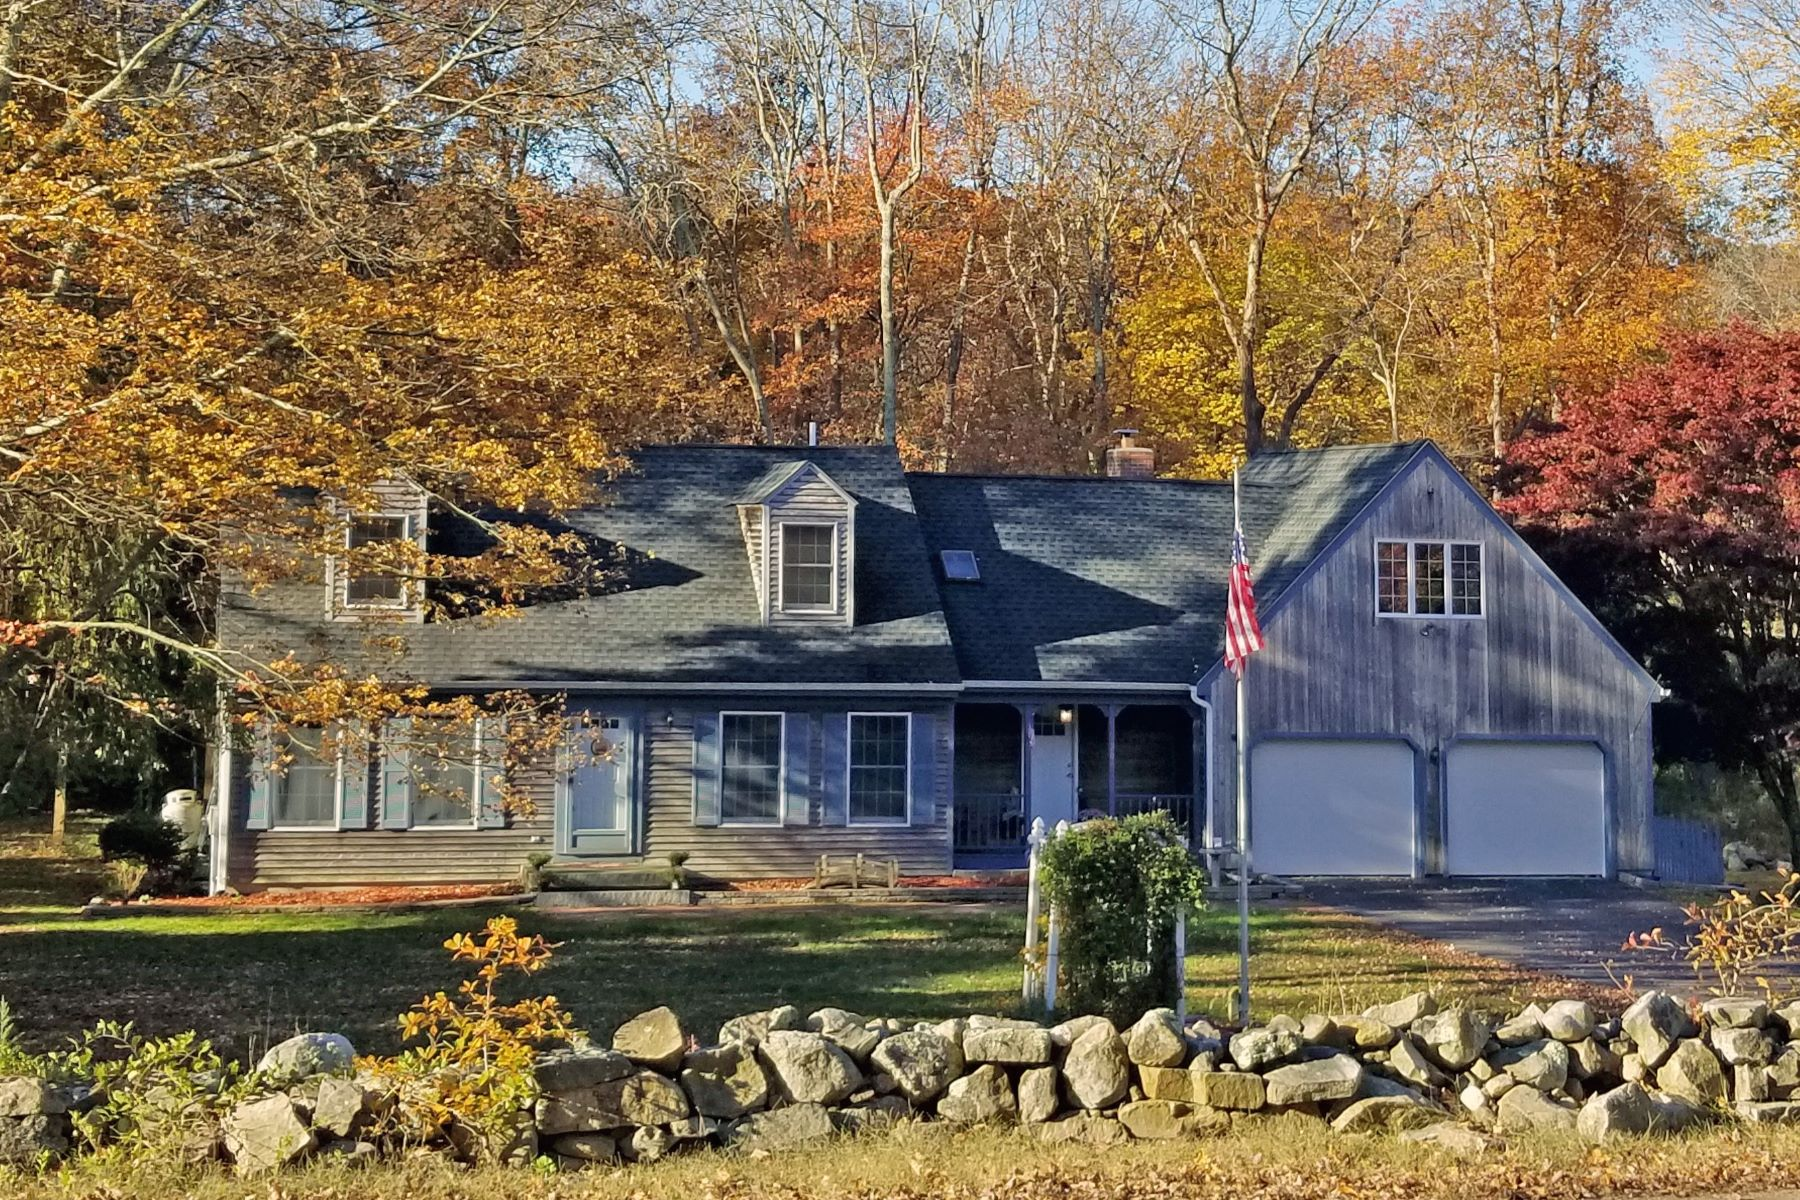 Single Family Homes for Sale at Large Cape in Rural Setting 1200 Route 163 Montville, Connecticut 06370 United States